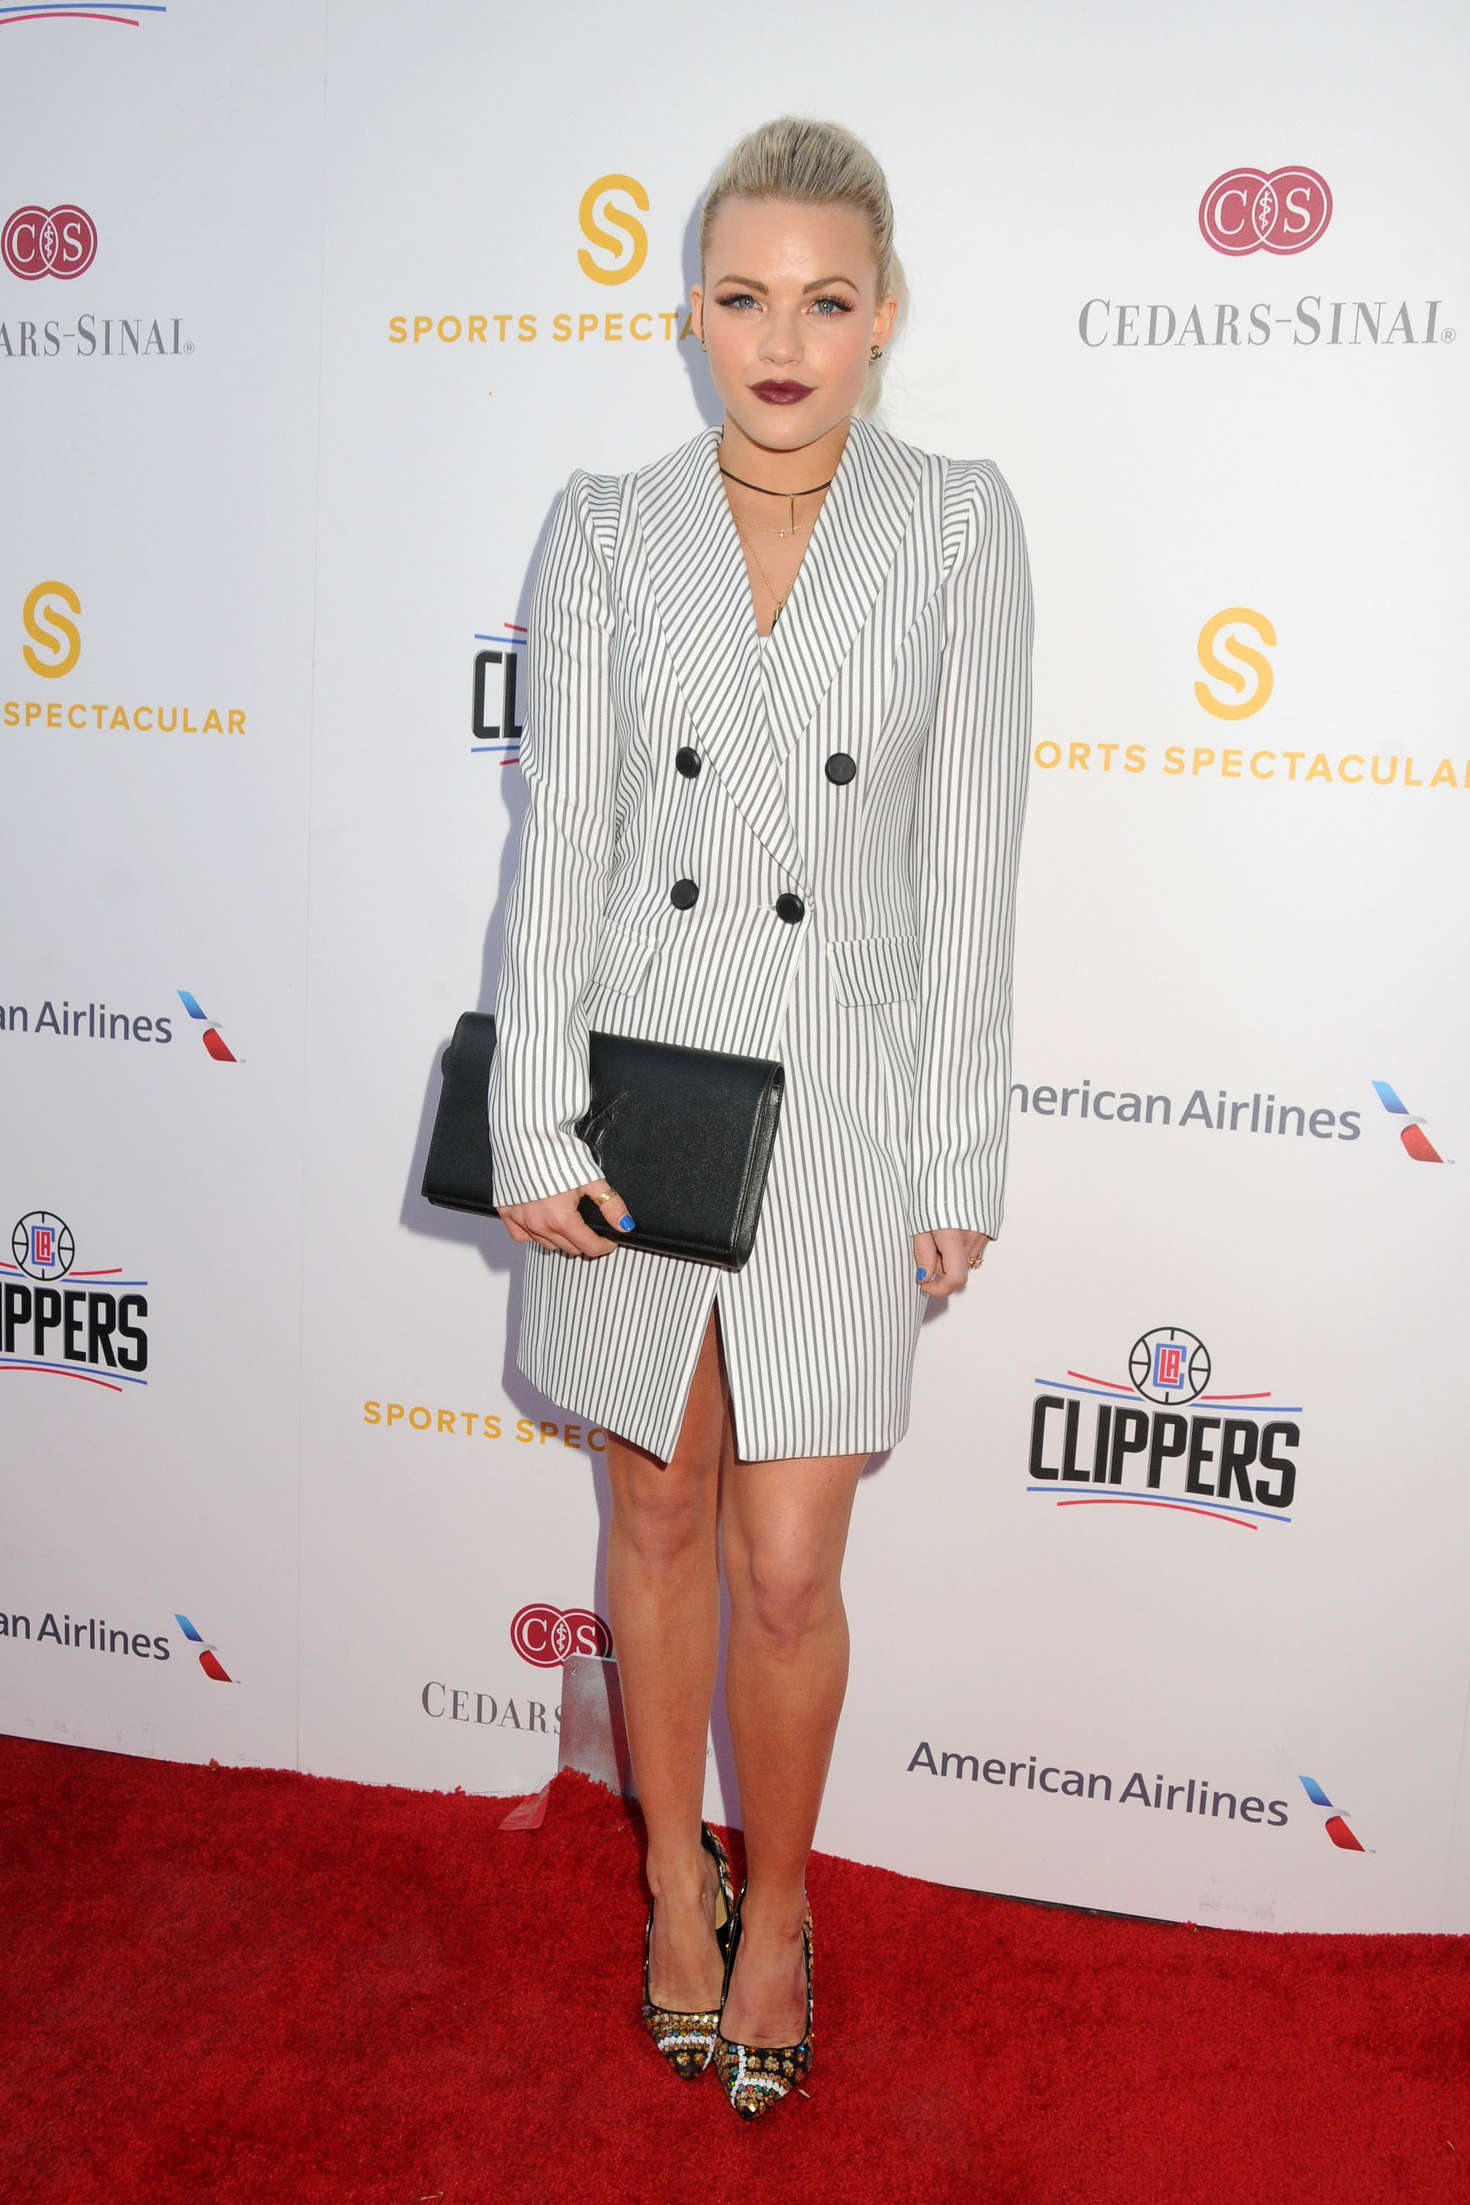 Witney Carson - 31st Annual Cedars-Sinai Sports Spectacular Gala in Westwood